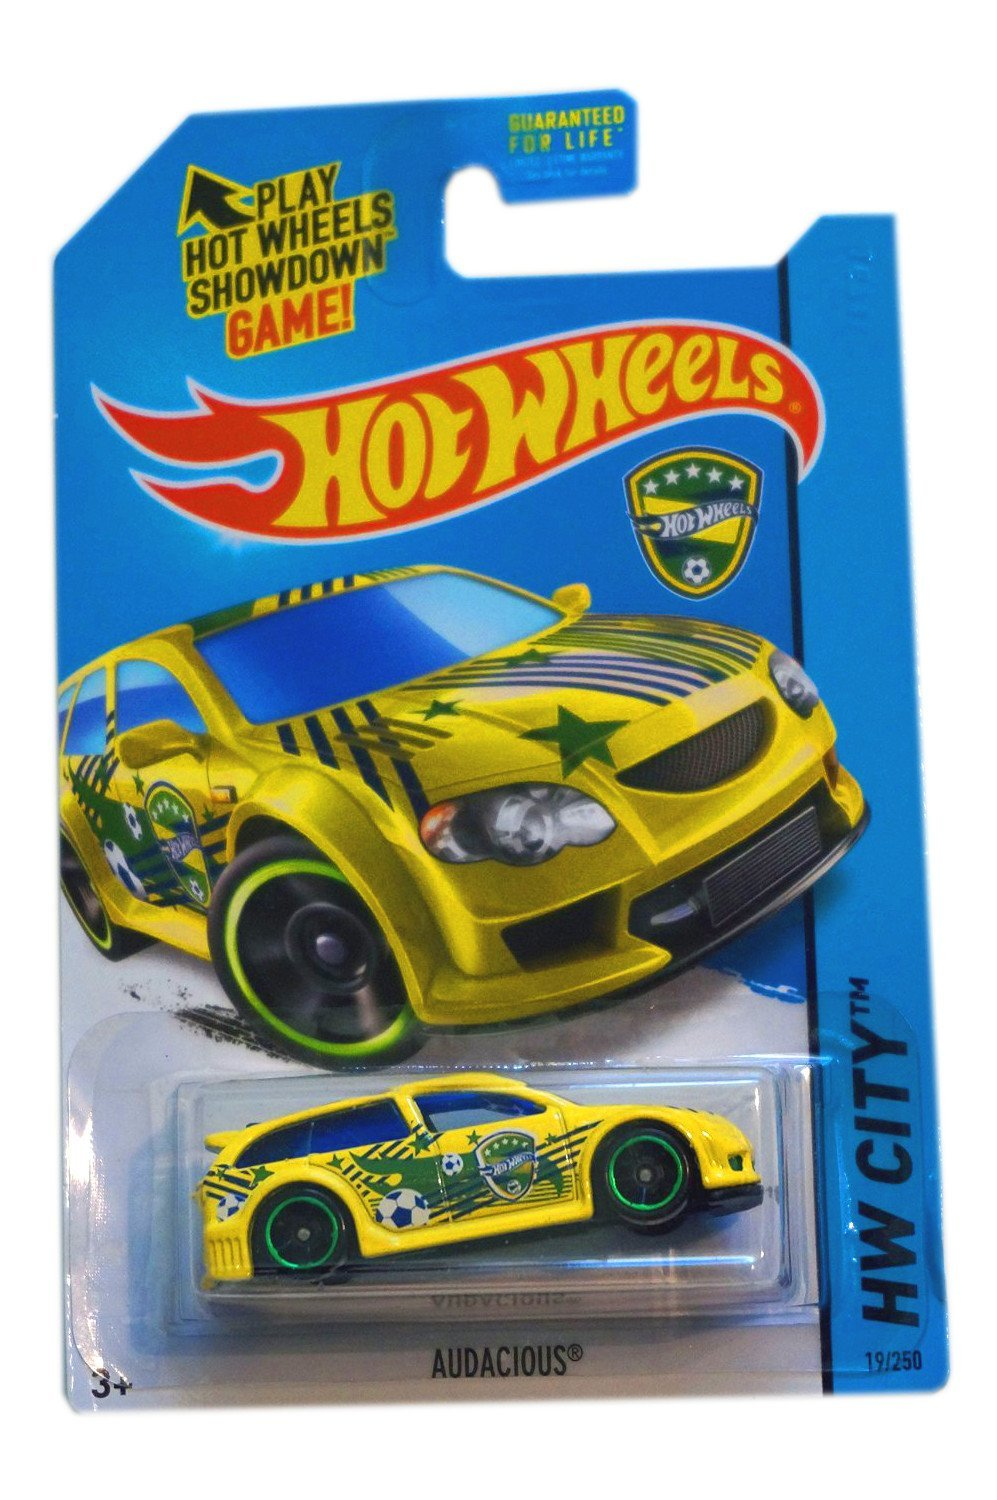 2014 Hot Wheels Hw City World Cup Soccer Brazil Audacious By Mattel by